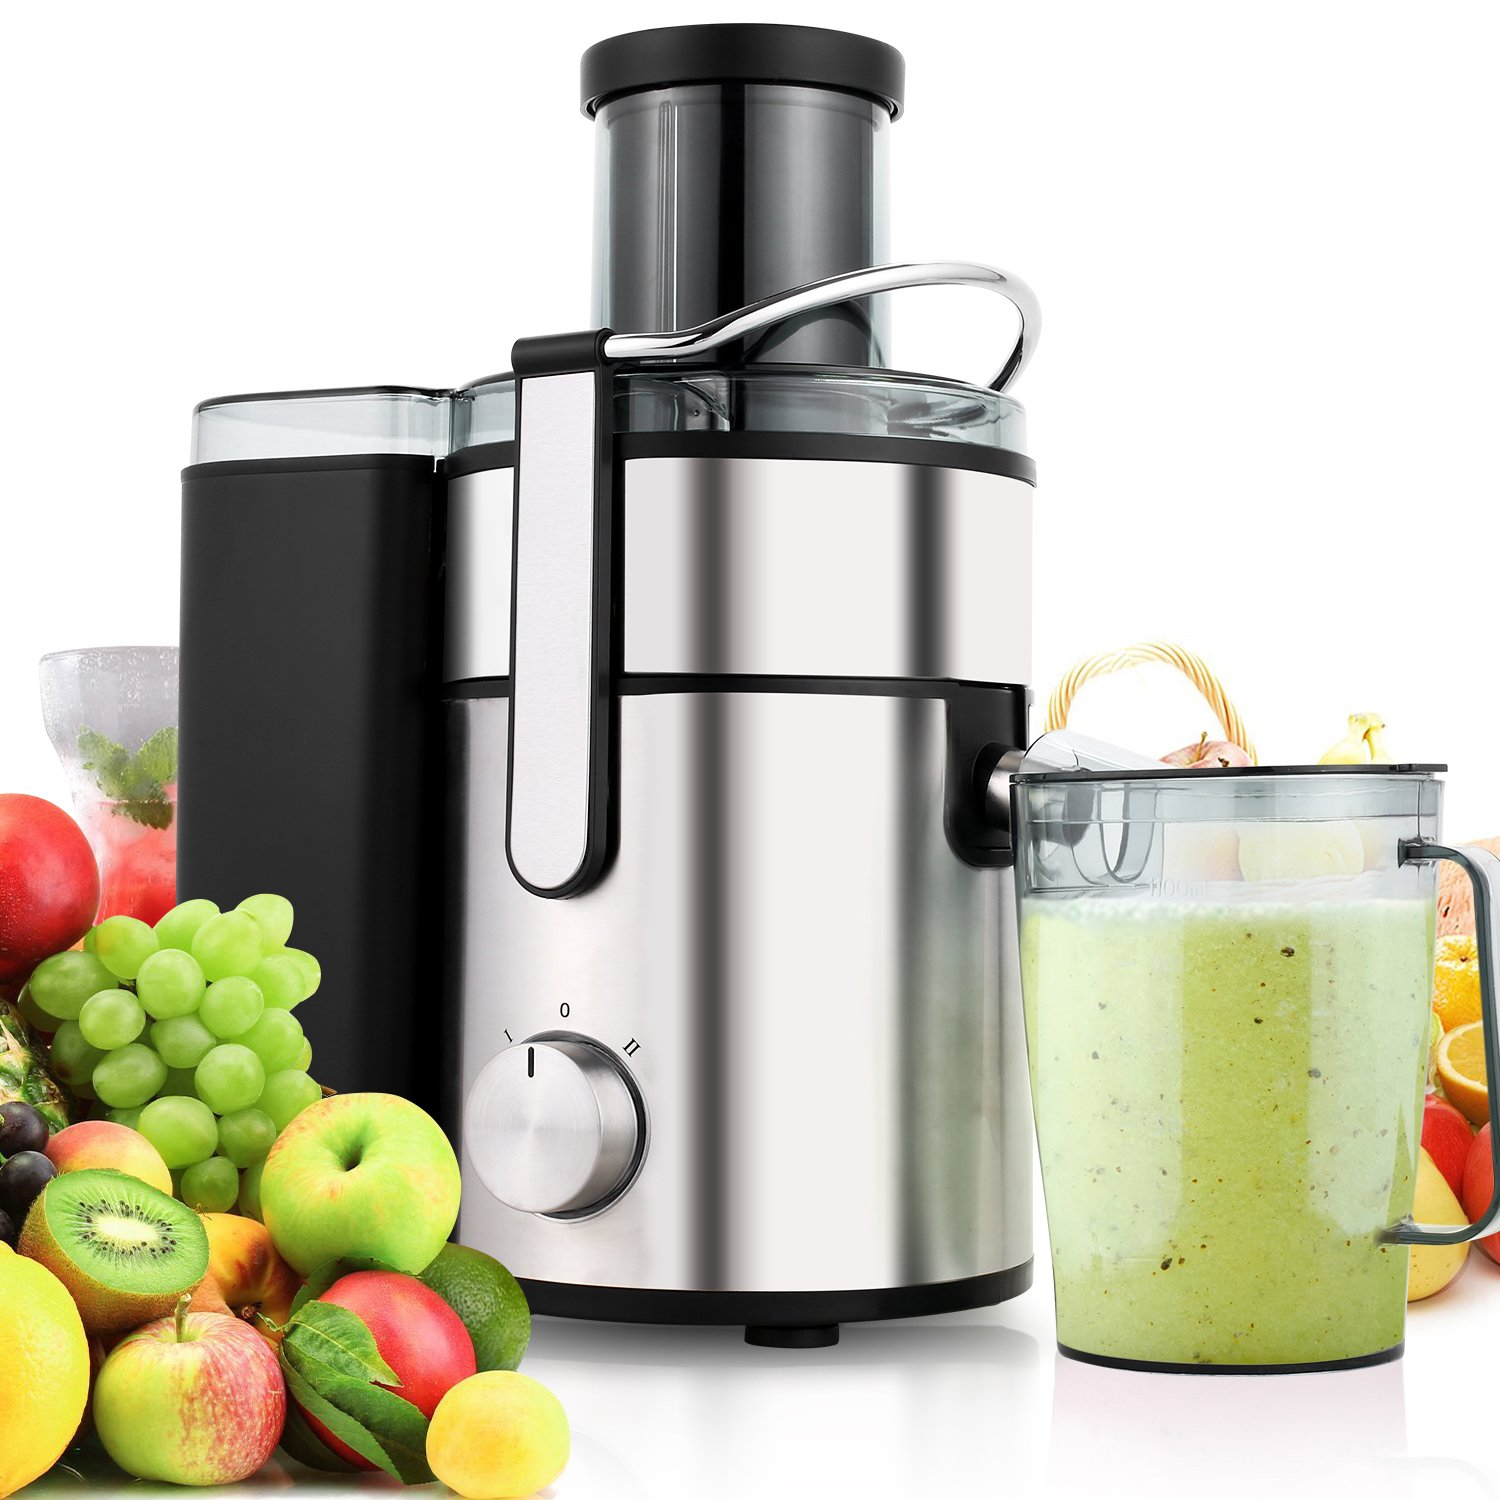 Juicer Juice Extractor, 80mm Wide Mouth Stainless Steel Centrifugal Juicer, BPA-Free, Non-Slip Feet, Three Speed Juicer Machine for Fruits and Vegetable